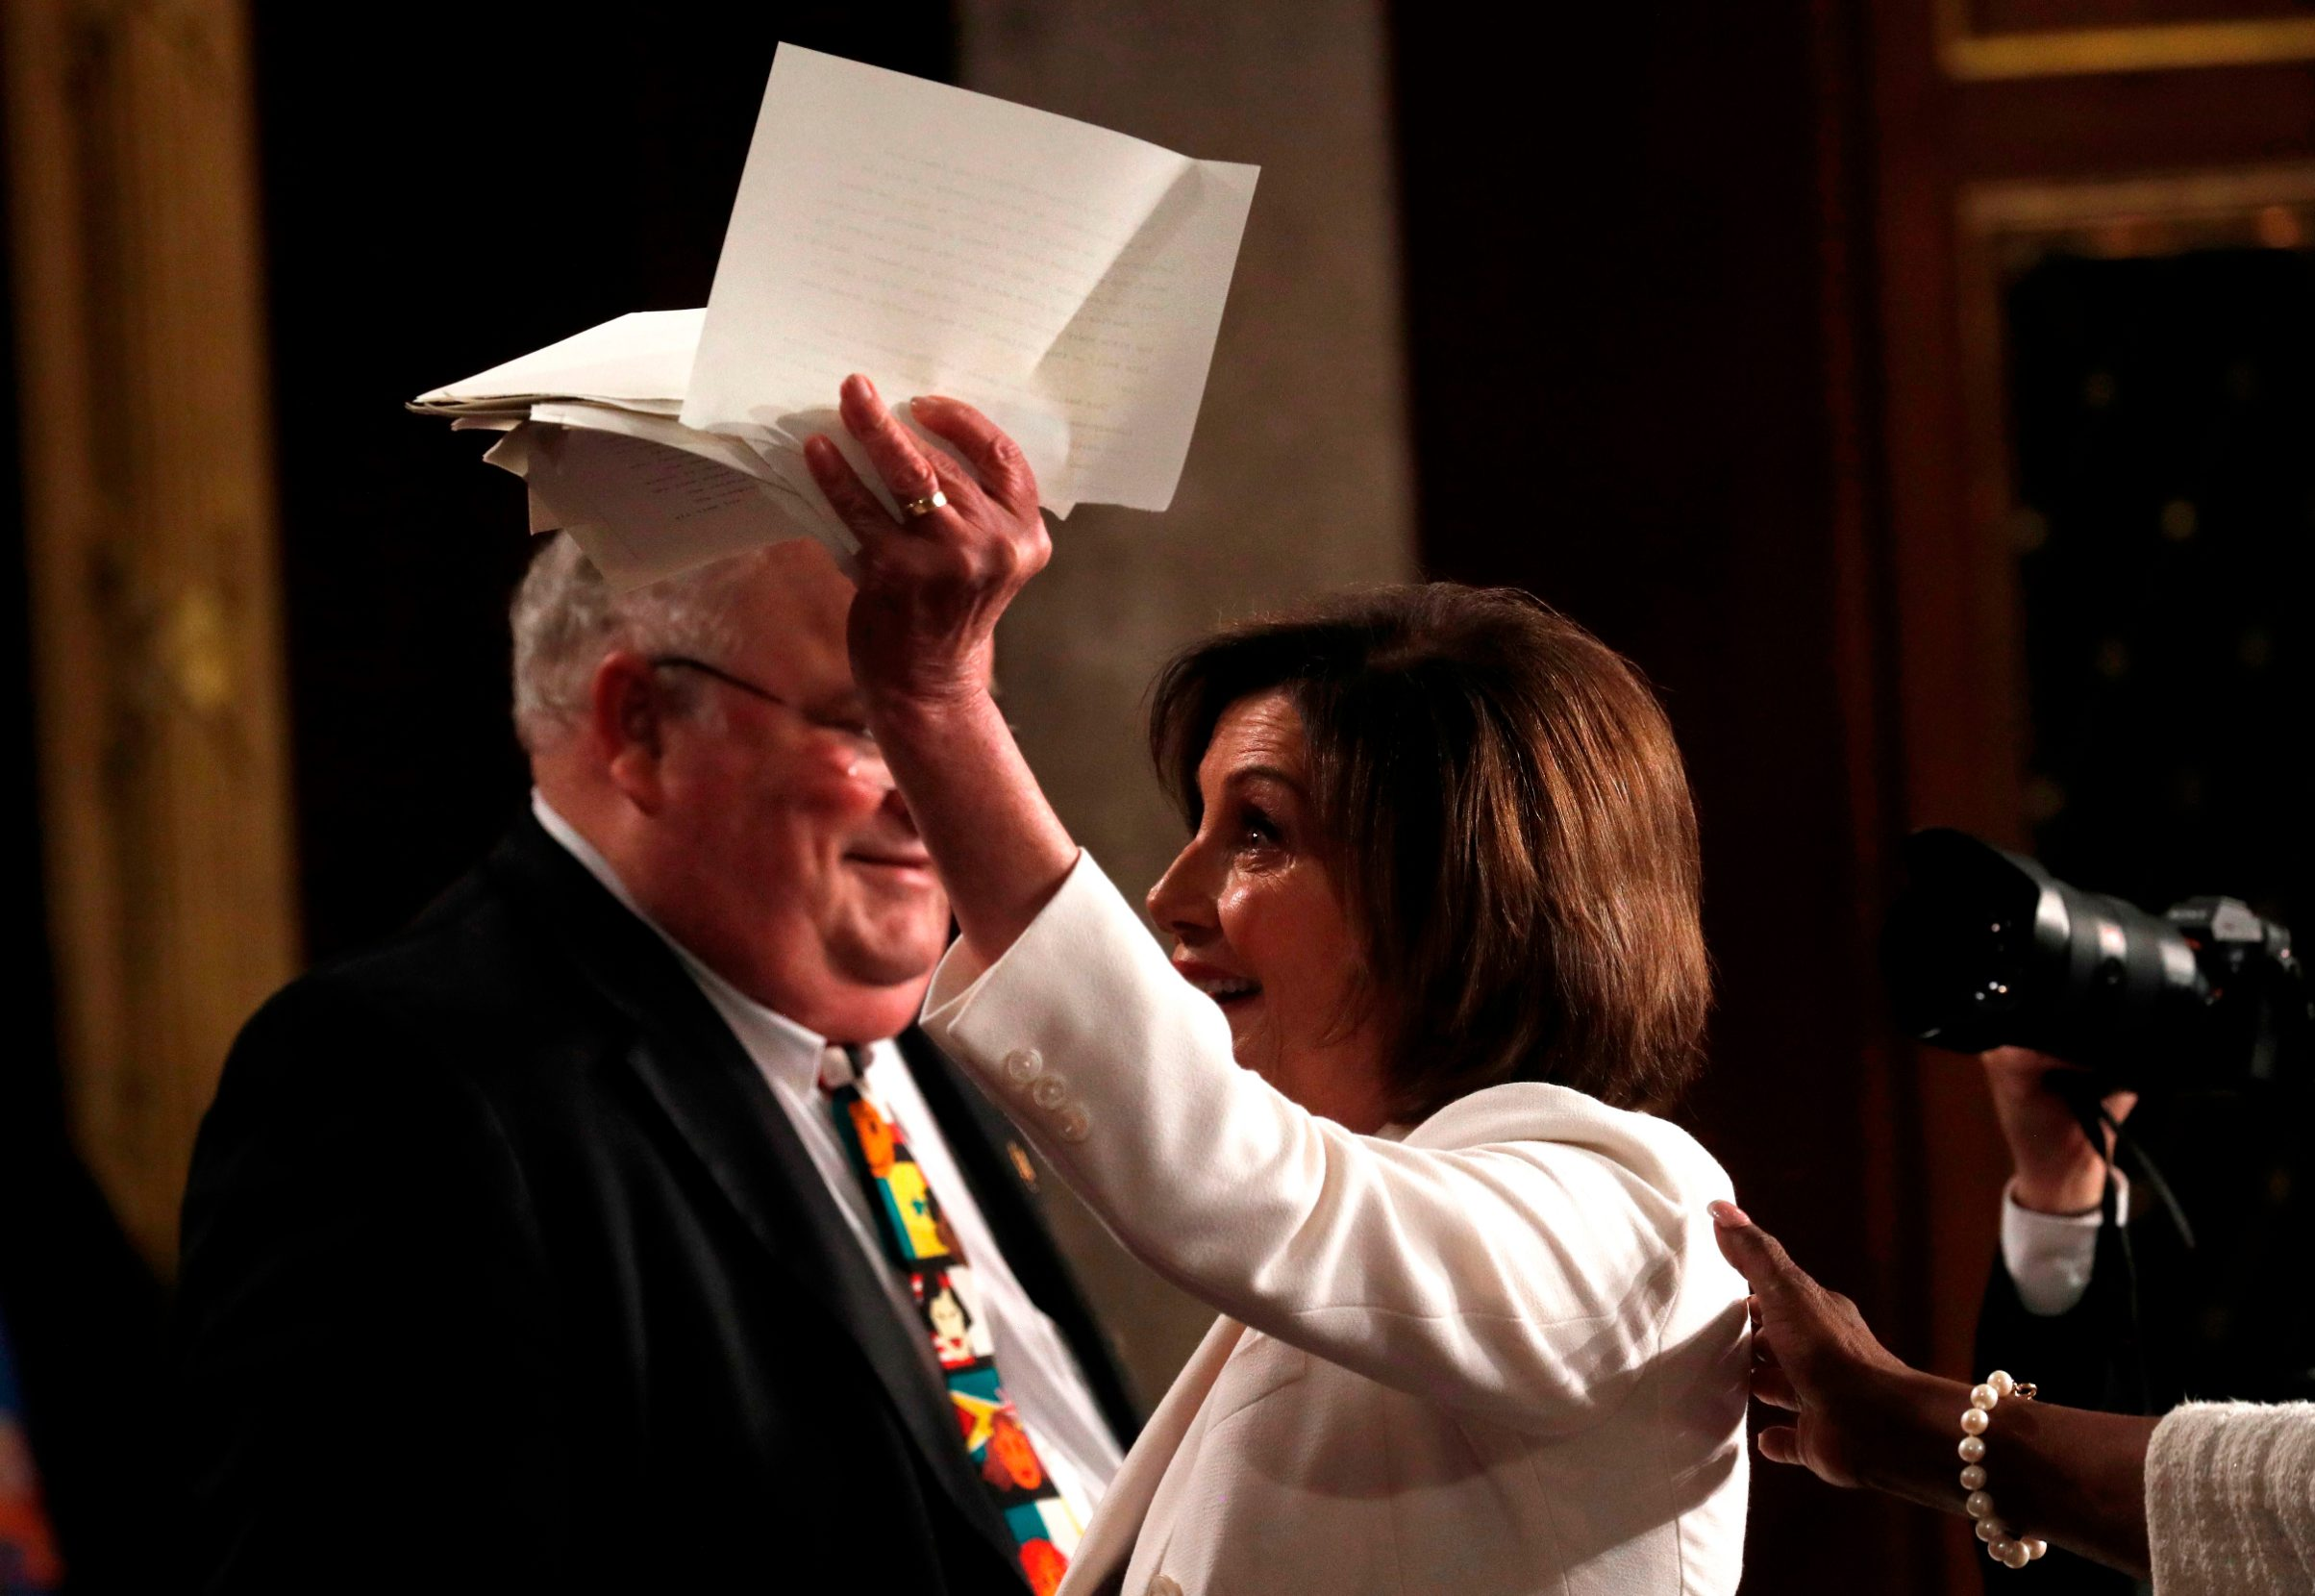 U.S. Speaker of the House Nancy Pelosi holds up her torn copy of President Donald Trump's speech after she tore it up at the conclusion of his State of the Union address at the US Capitol in Washington, DC, on February 4, 2020. (Photo by LEAH MILLIS / POOL / AFP)